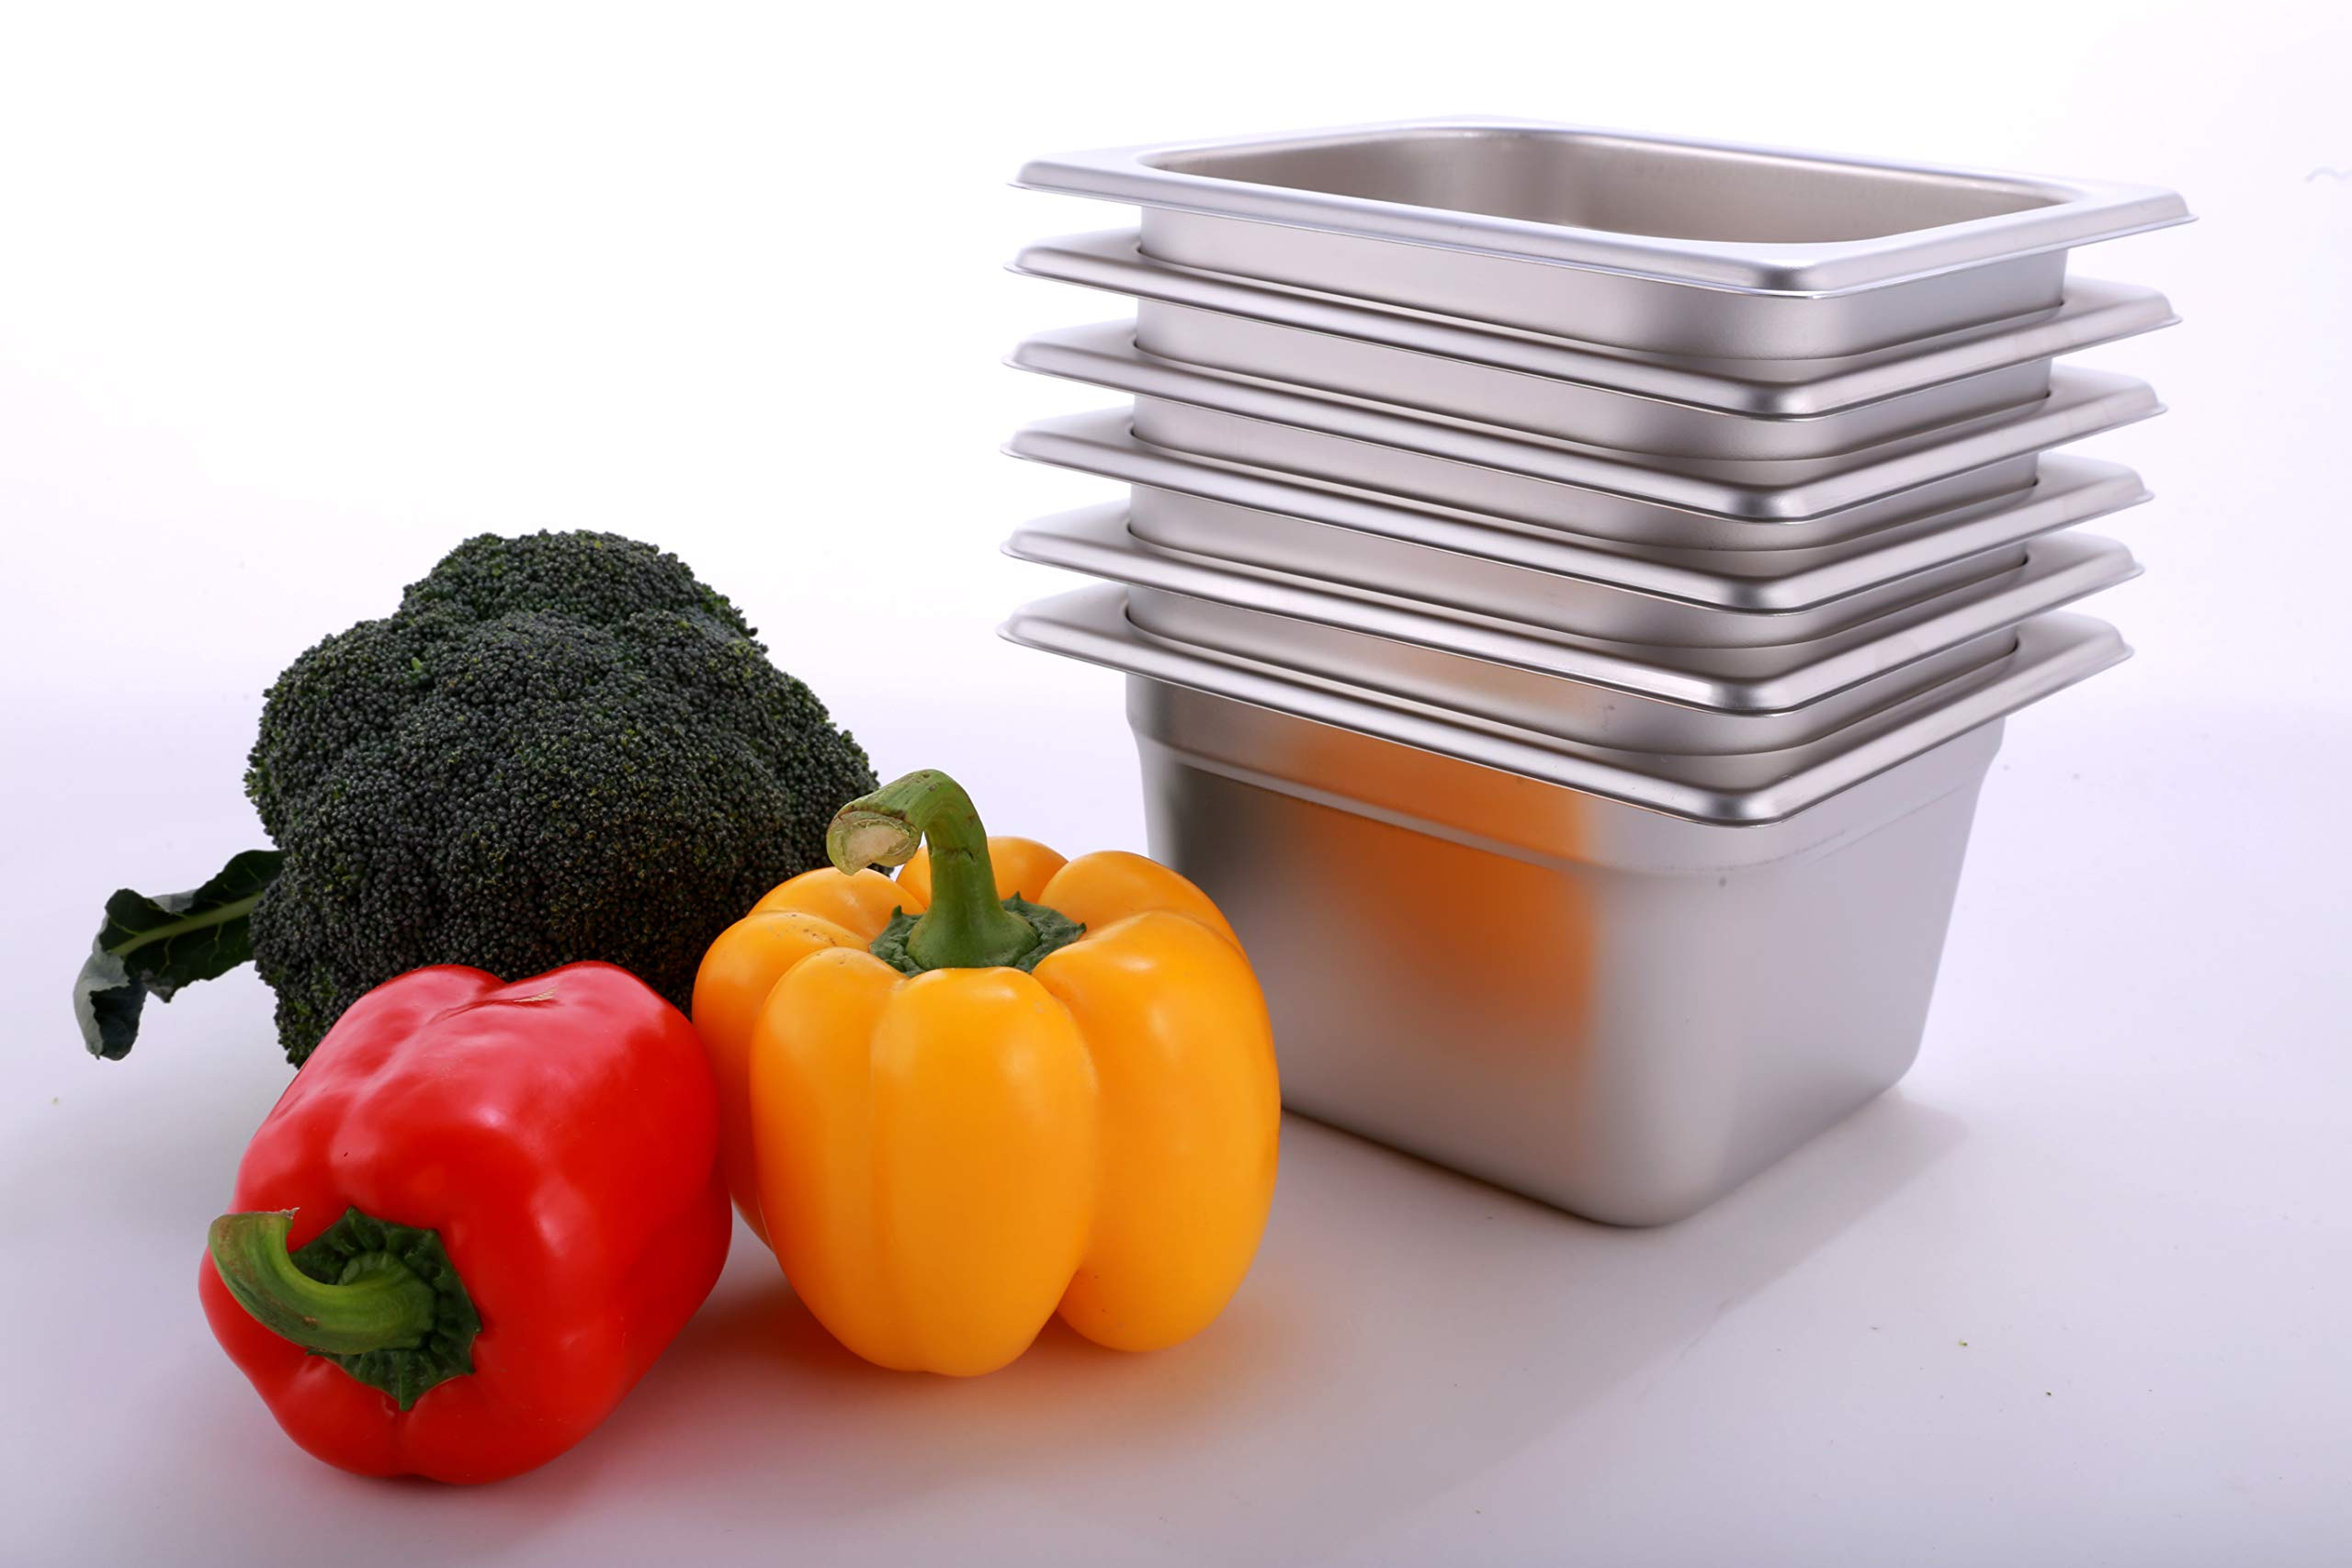 Hakka 1/6 Size Stainless Steel Gastronorm Pans,6''Deep Gastronorm Containers- Pack of 6